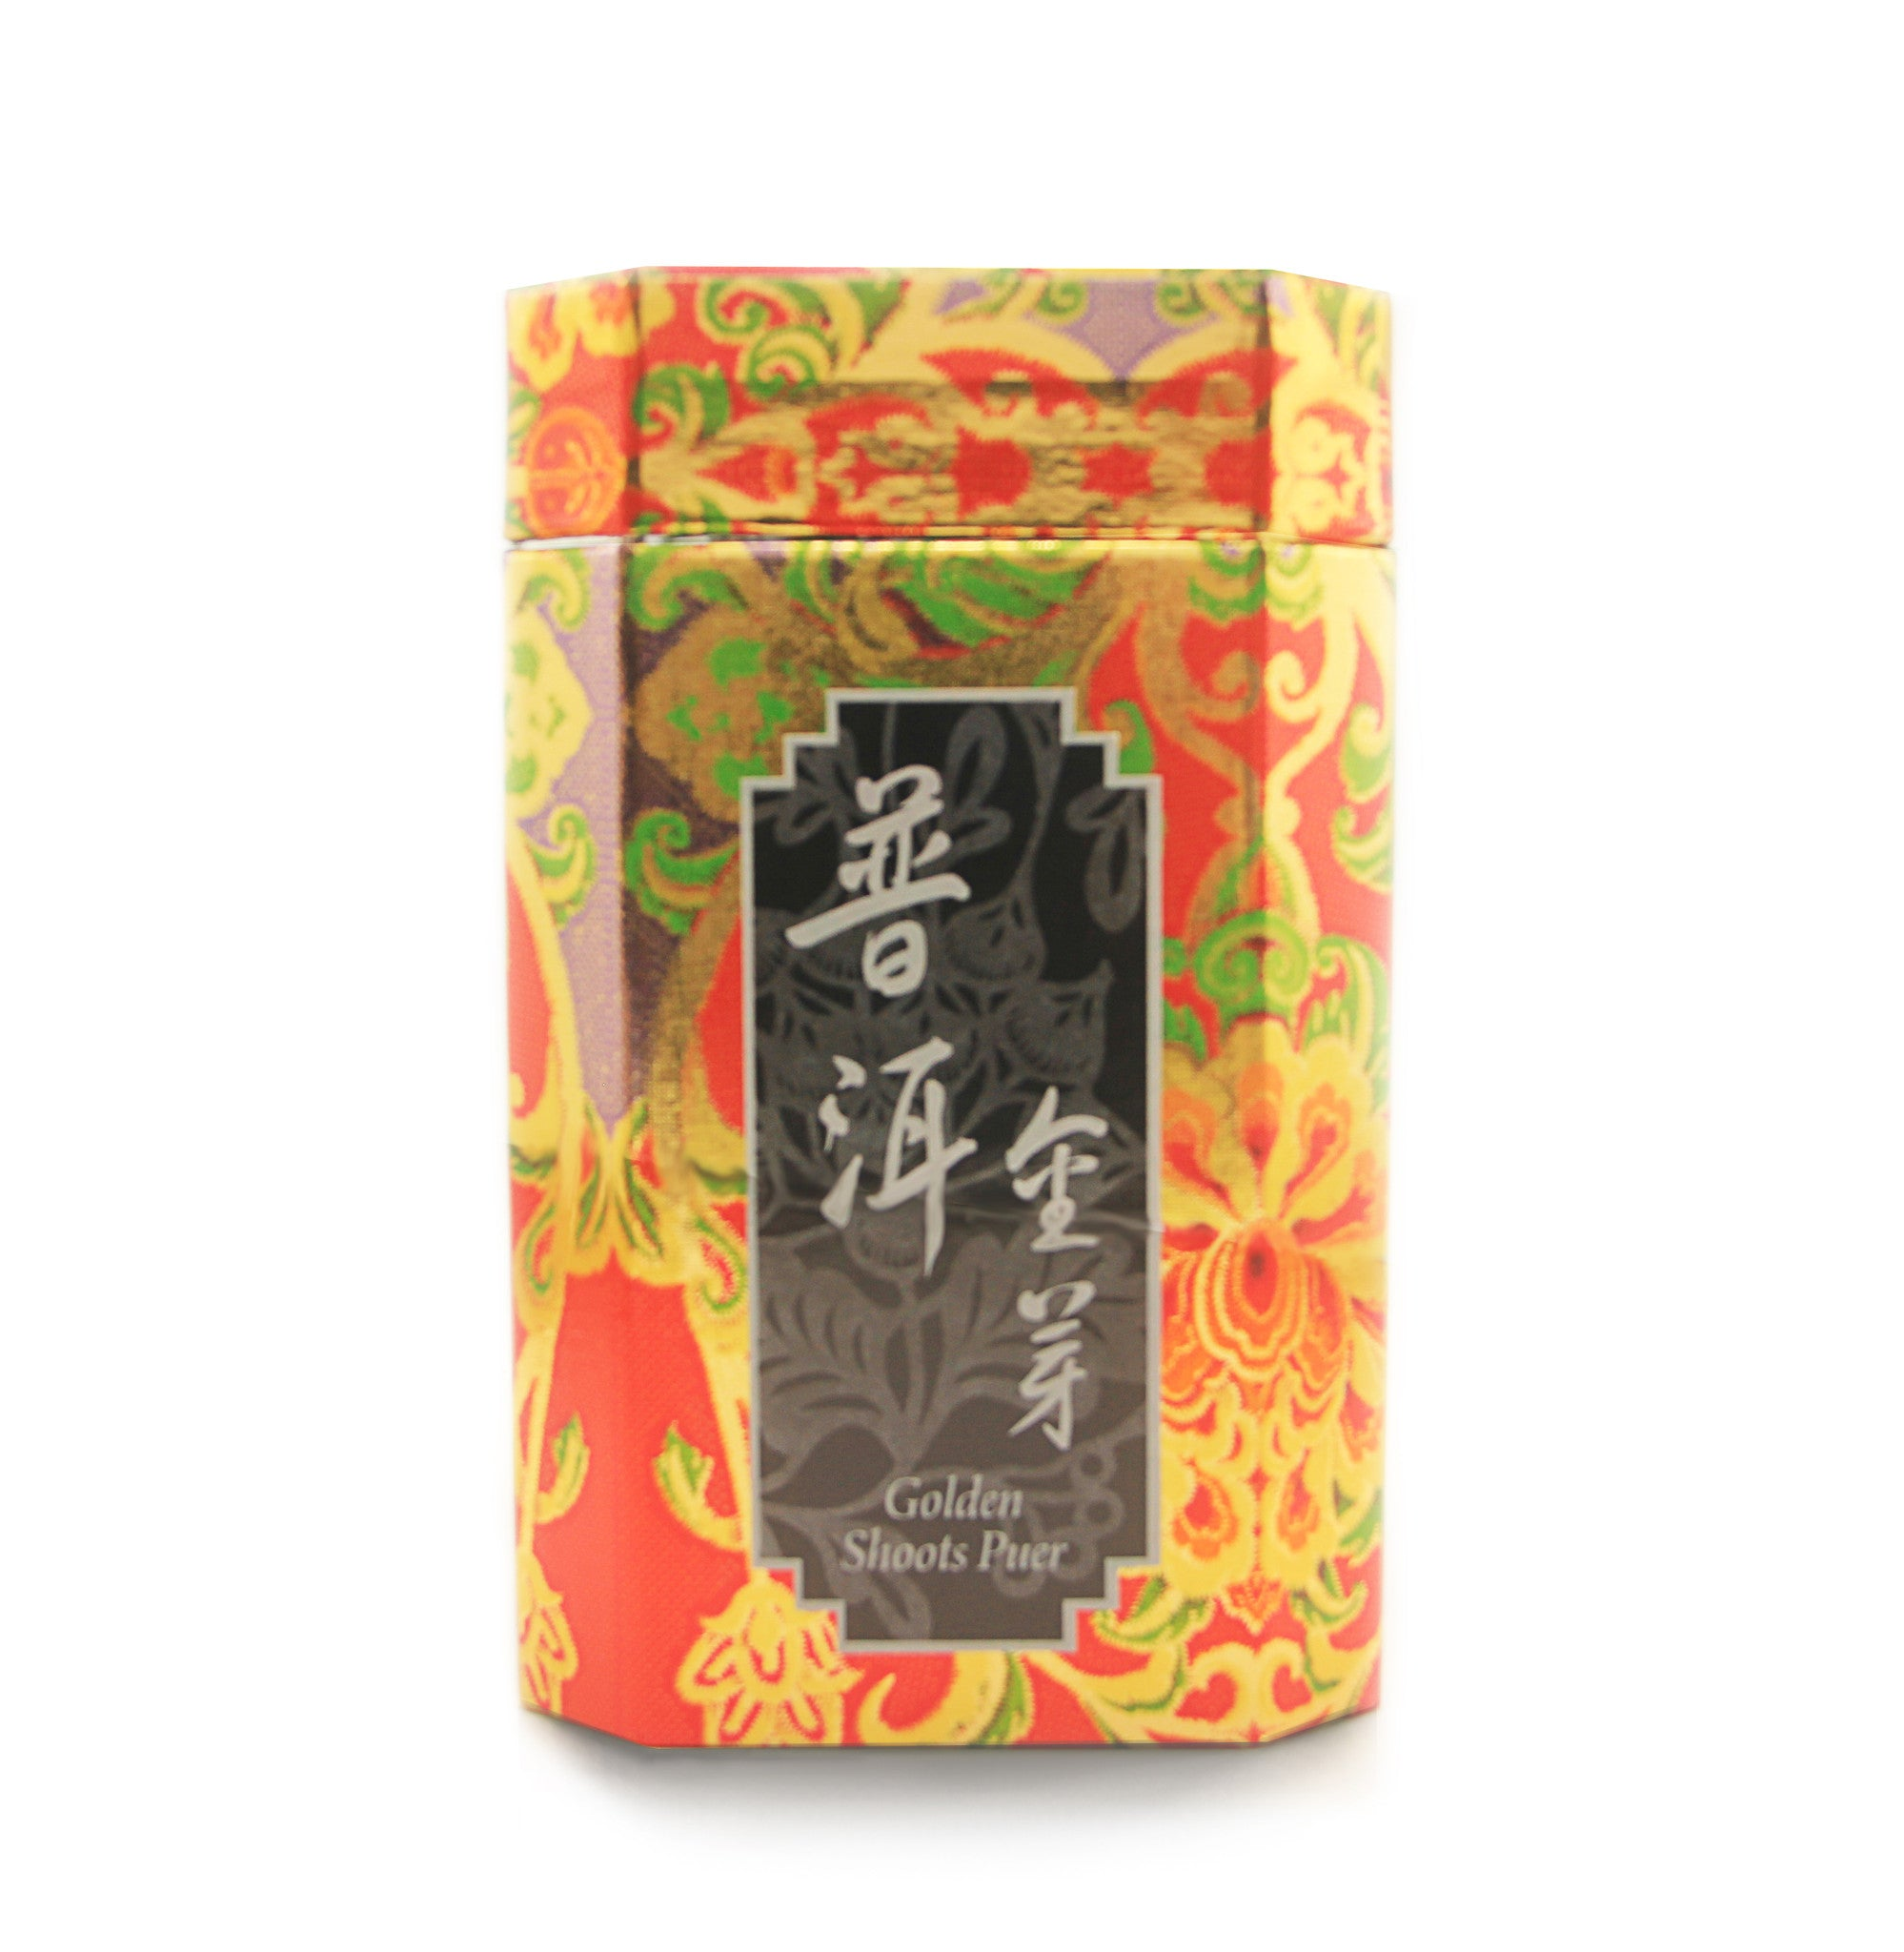 '00 Golden Shoot Pu-er (普洱金芽)